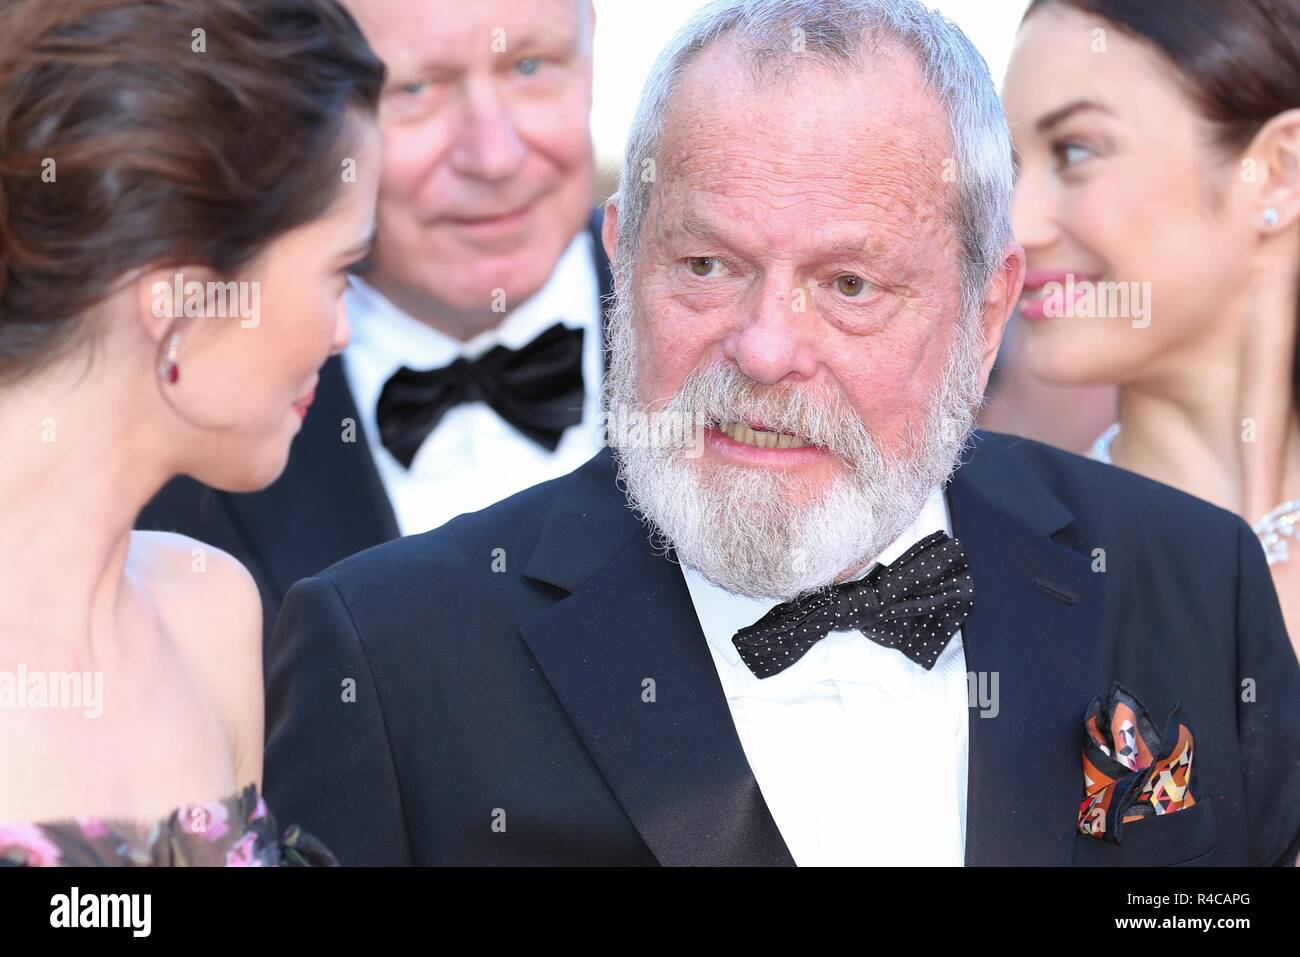 CANNES, FRANCE – MAY 19, 2018: Terry Gilliam walks the red carpet at 'The Man Who Killed Don Quixote' screening at the 71st Festival de Cannes - Stock Image